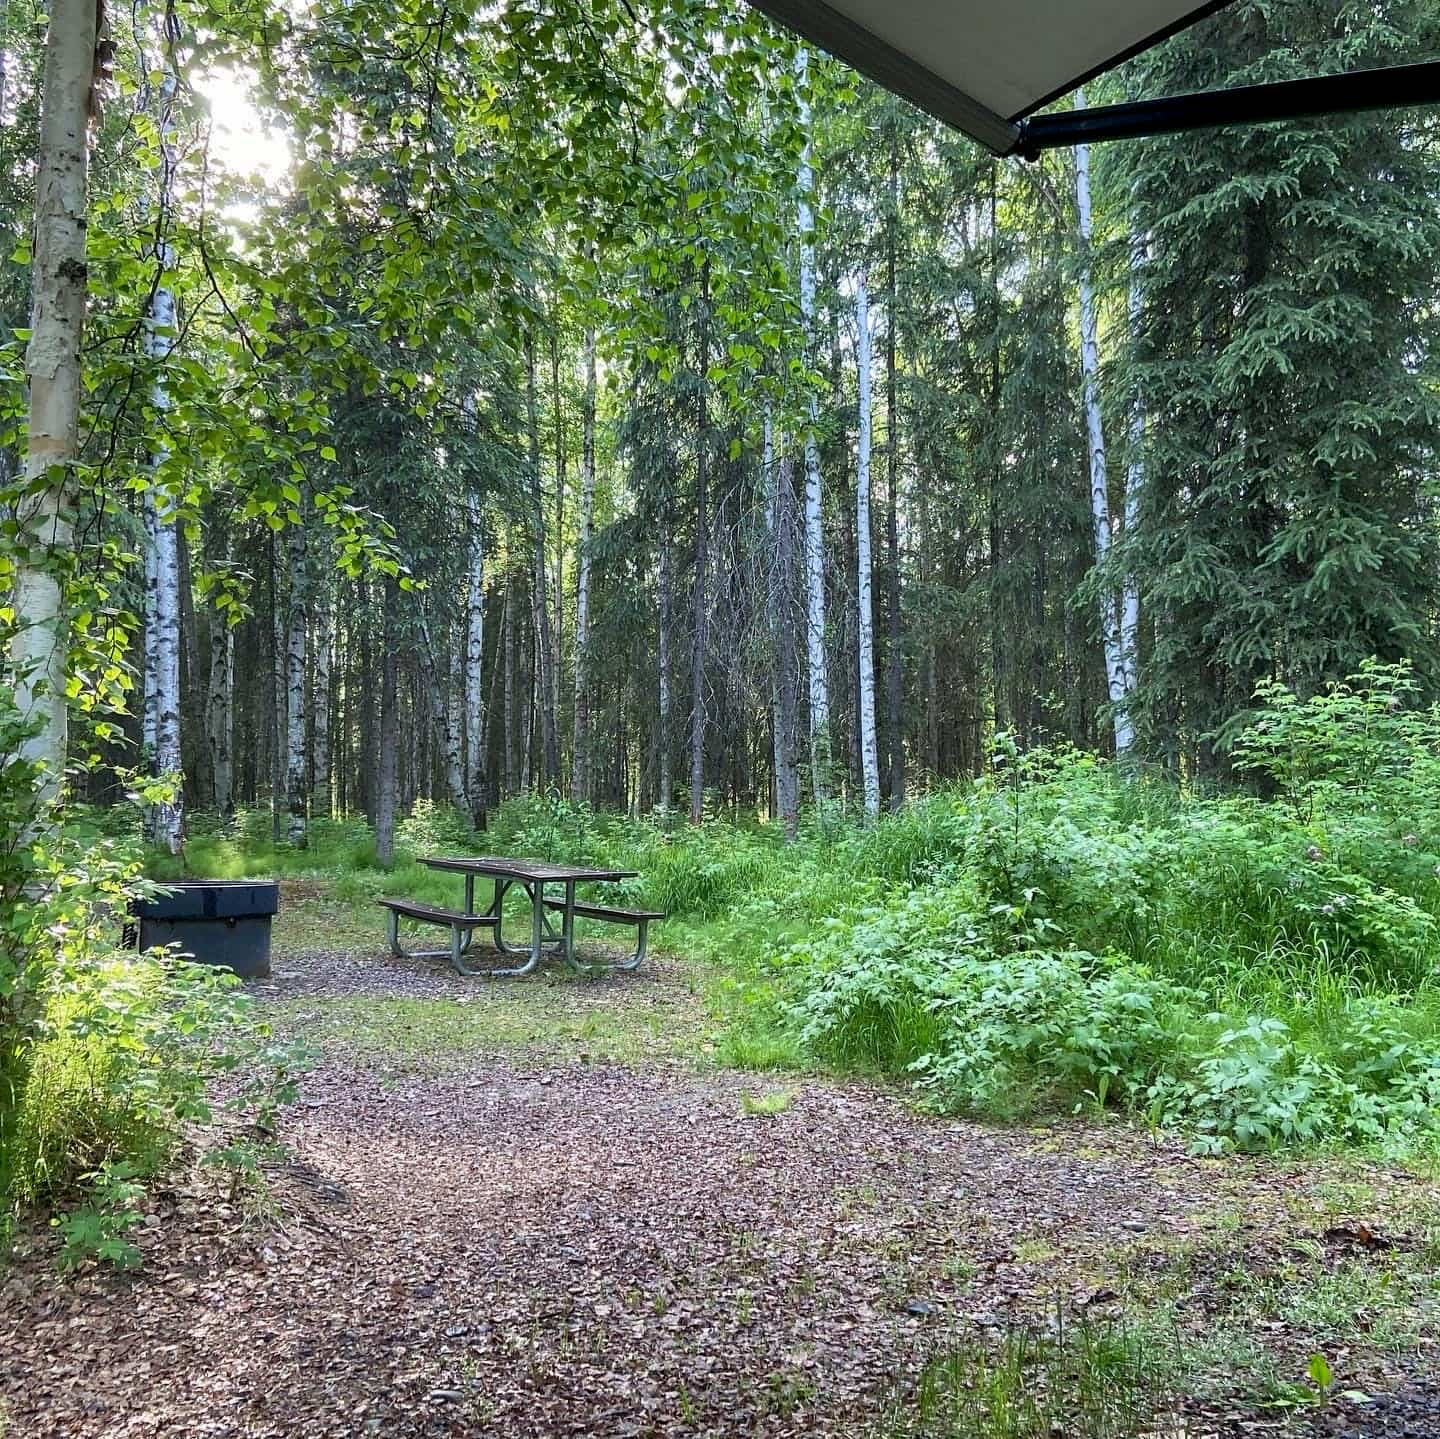 Campsite with picnic table and fire pit surrounded by aspen trees.